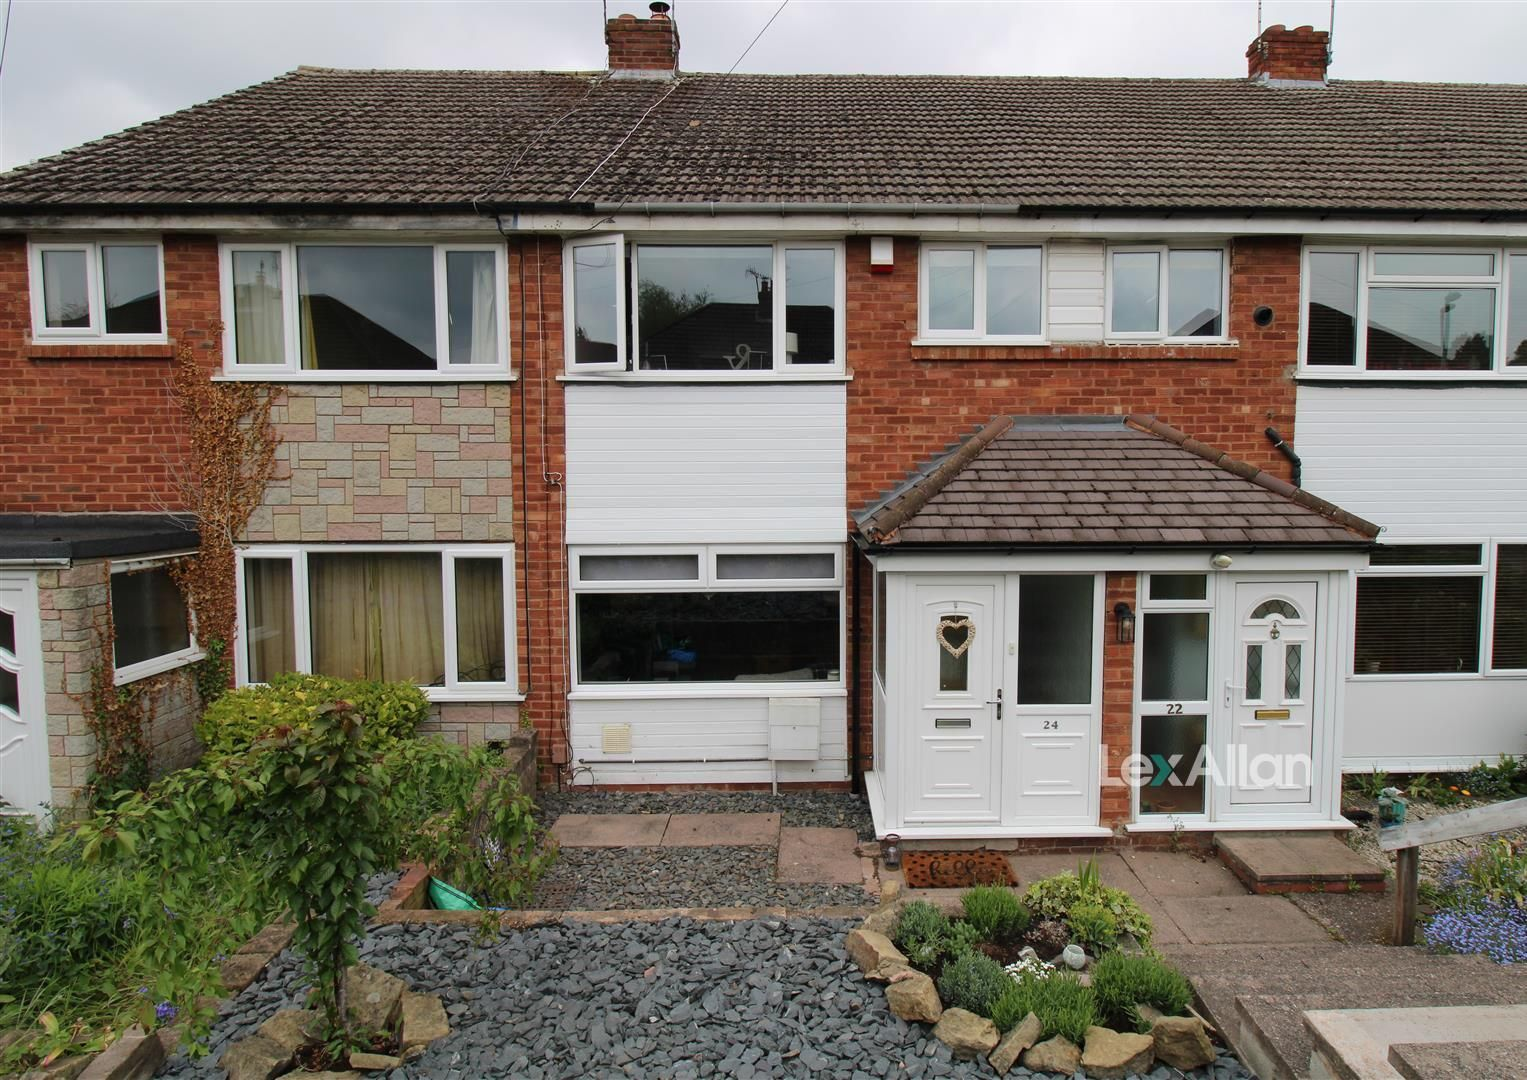 3 bed house for sale, DY8